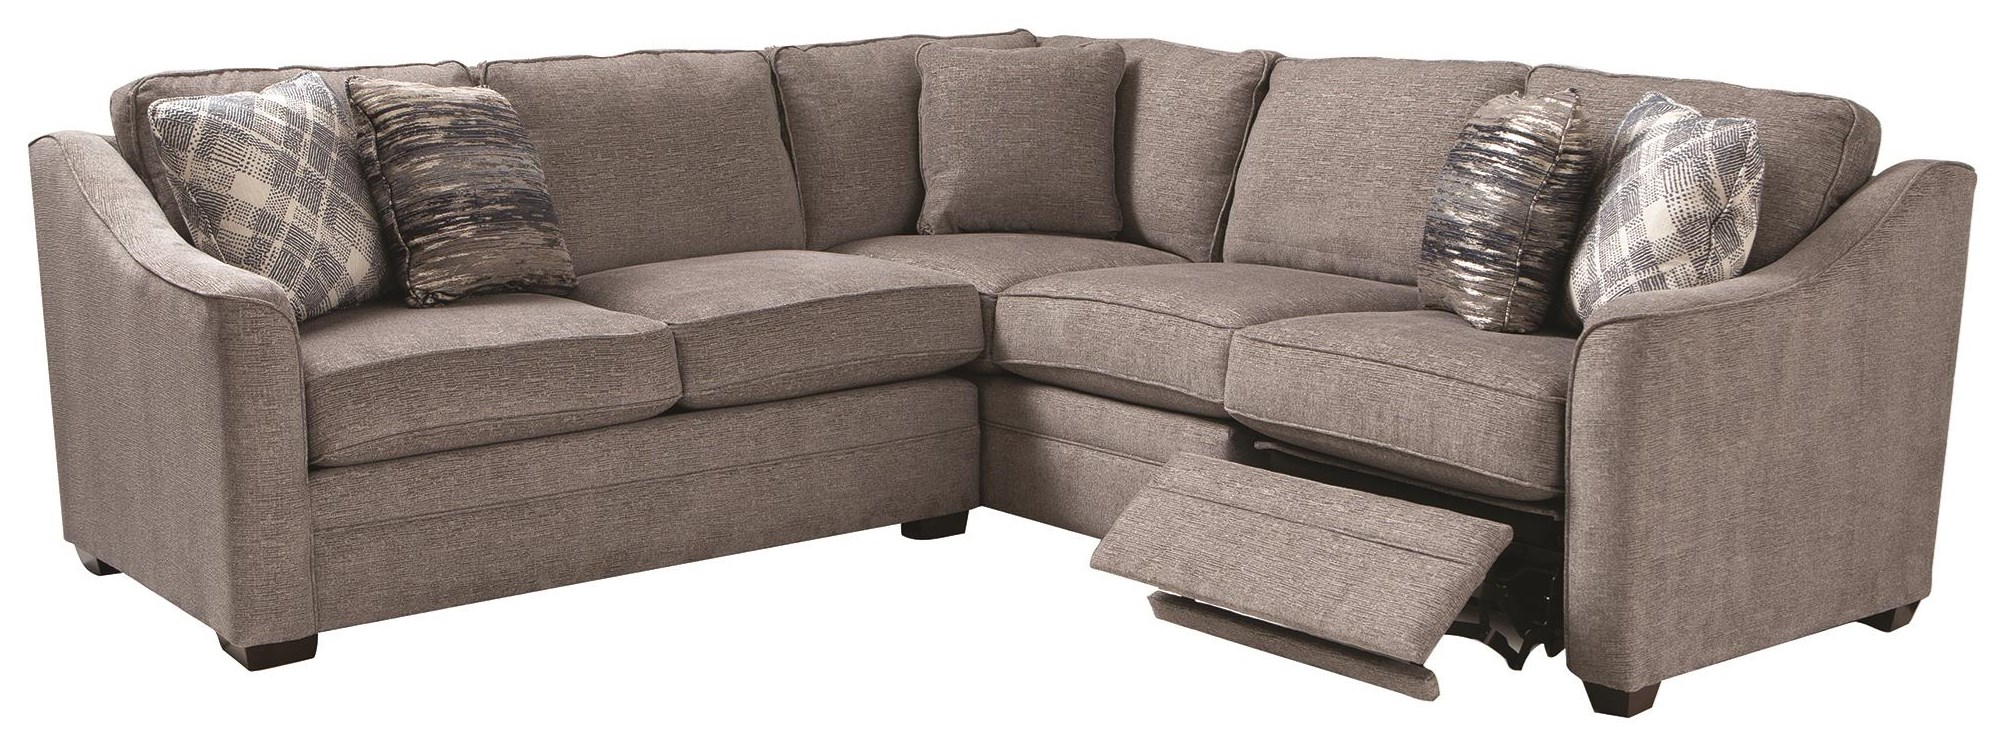 Wanderer 2 Piece Power Sectional by Craftmaster at Darvin Furniture